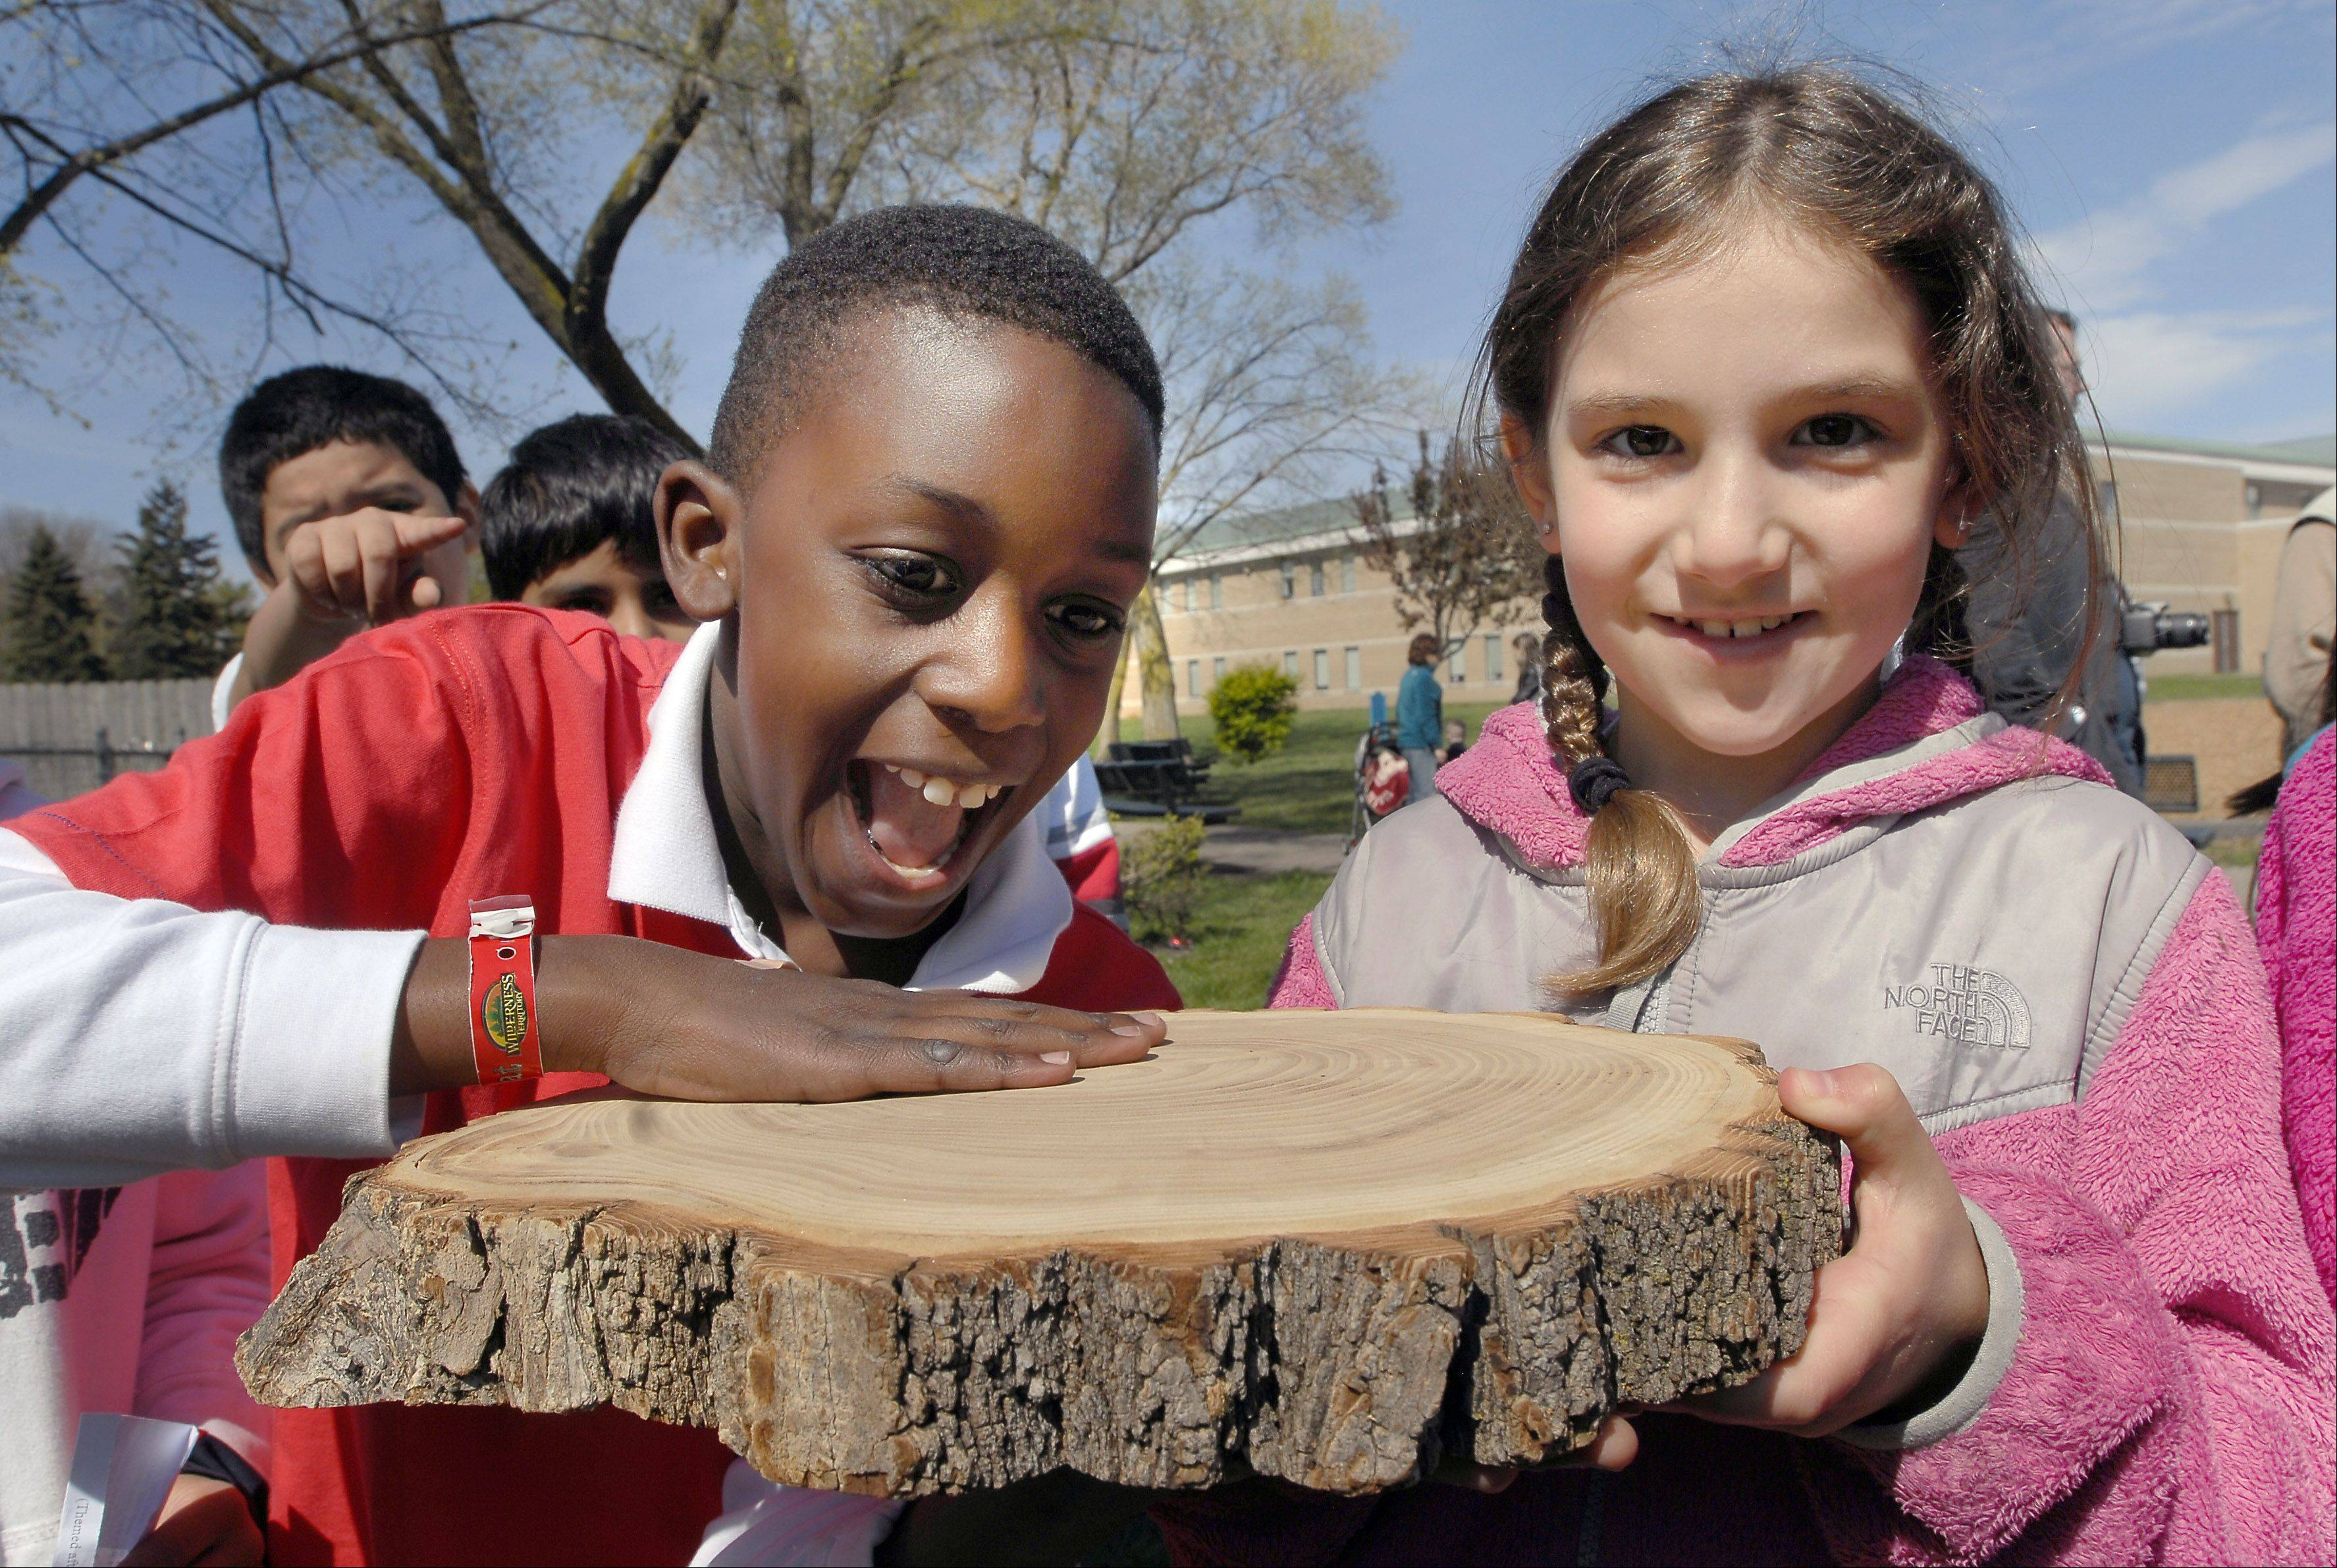 Giovanni McFarlane, left, and Charli Richards correctly count the rings of a tree outside Walt Whitman School in Wheeling.